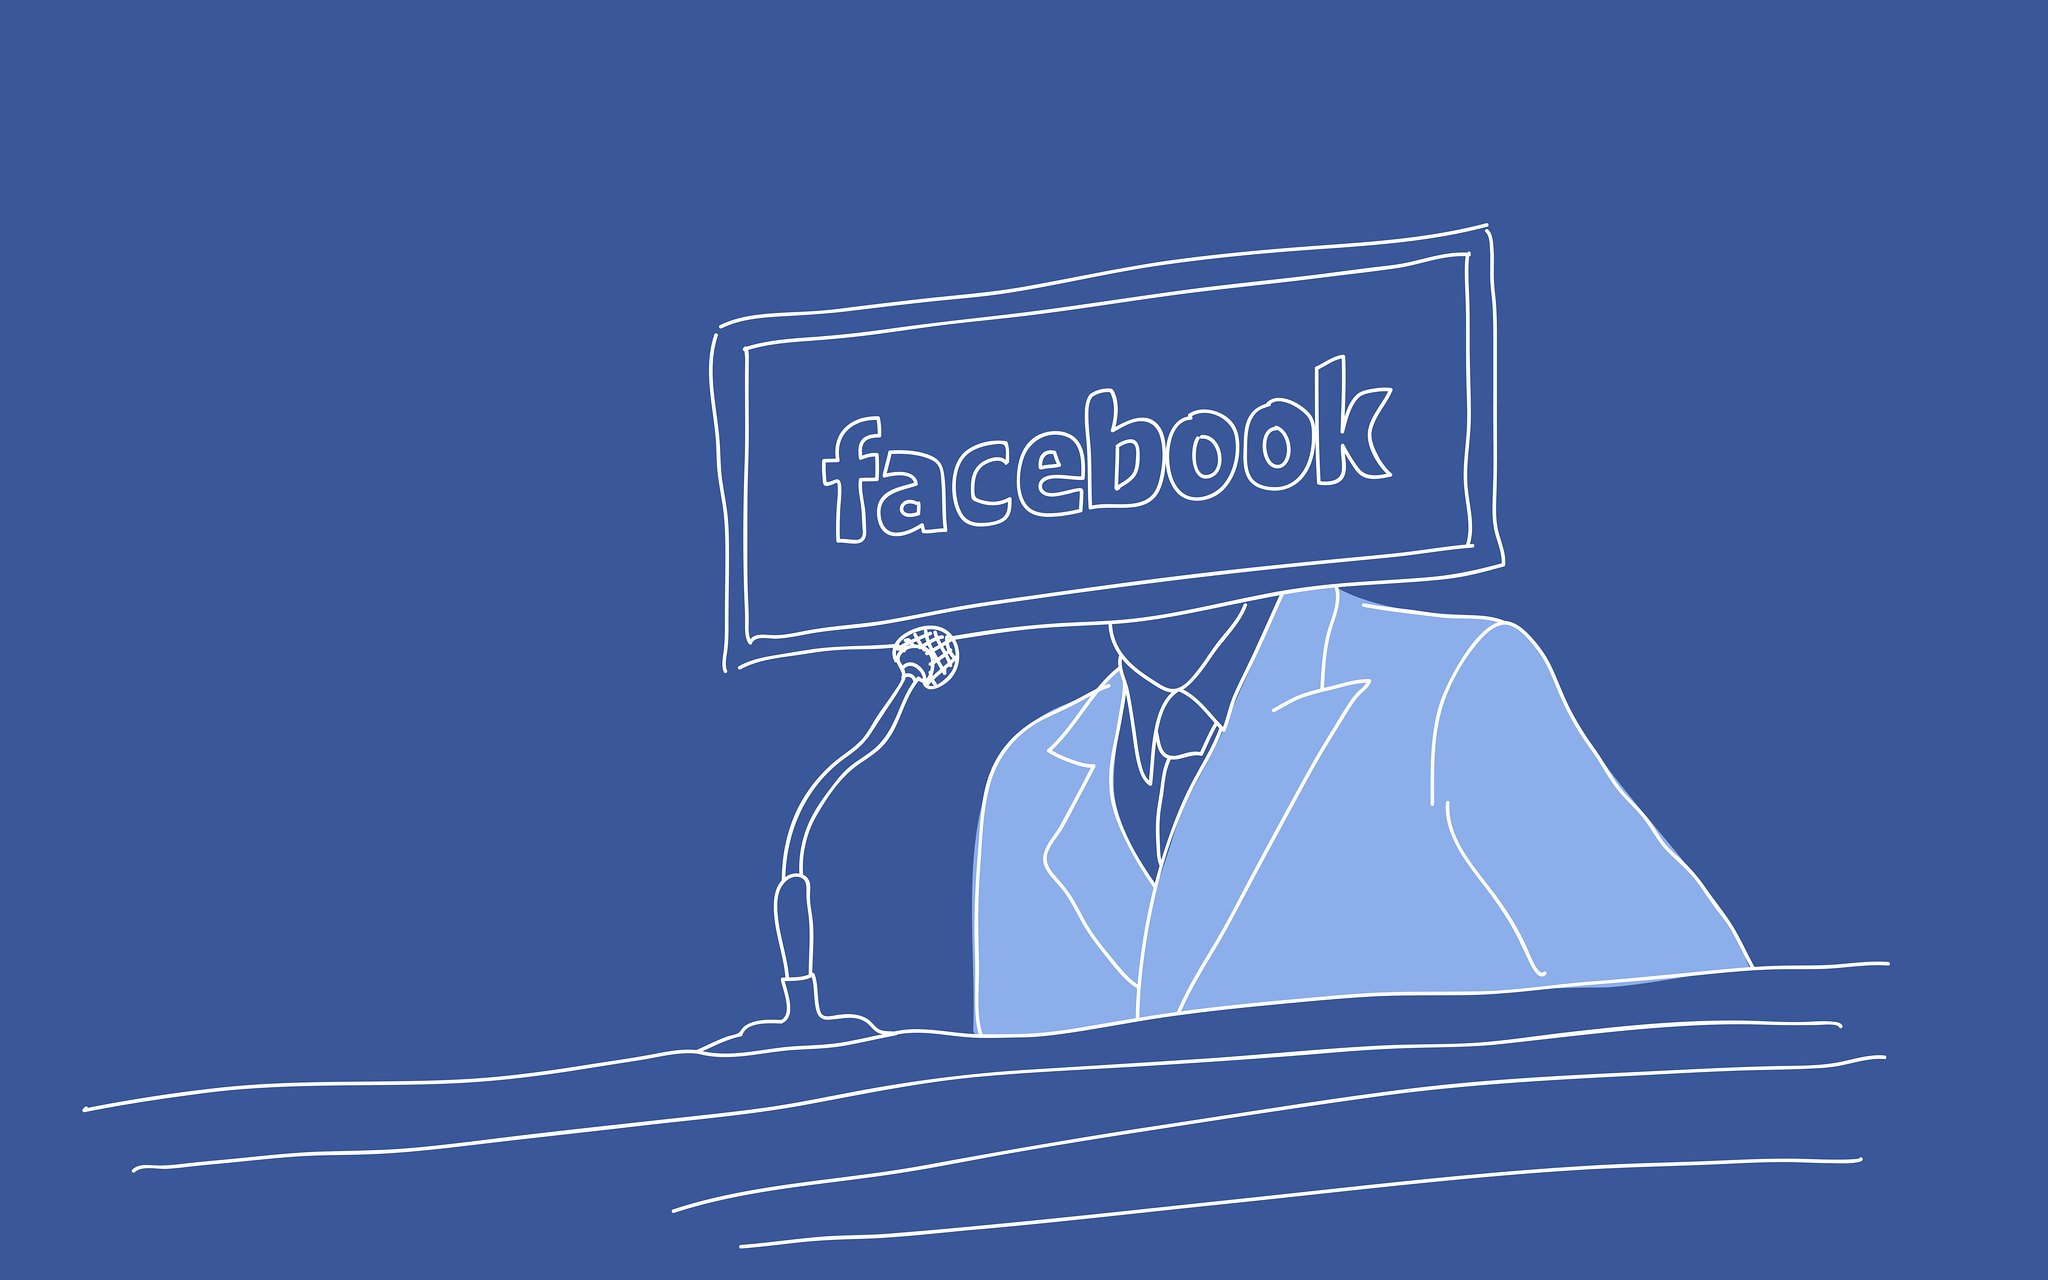 Blue illustration of a man in a suit, his face replaced by the Facebook logo.